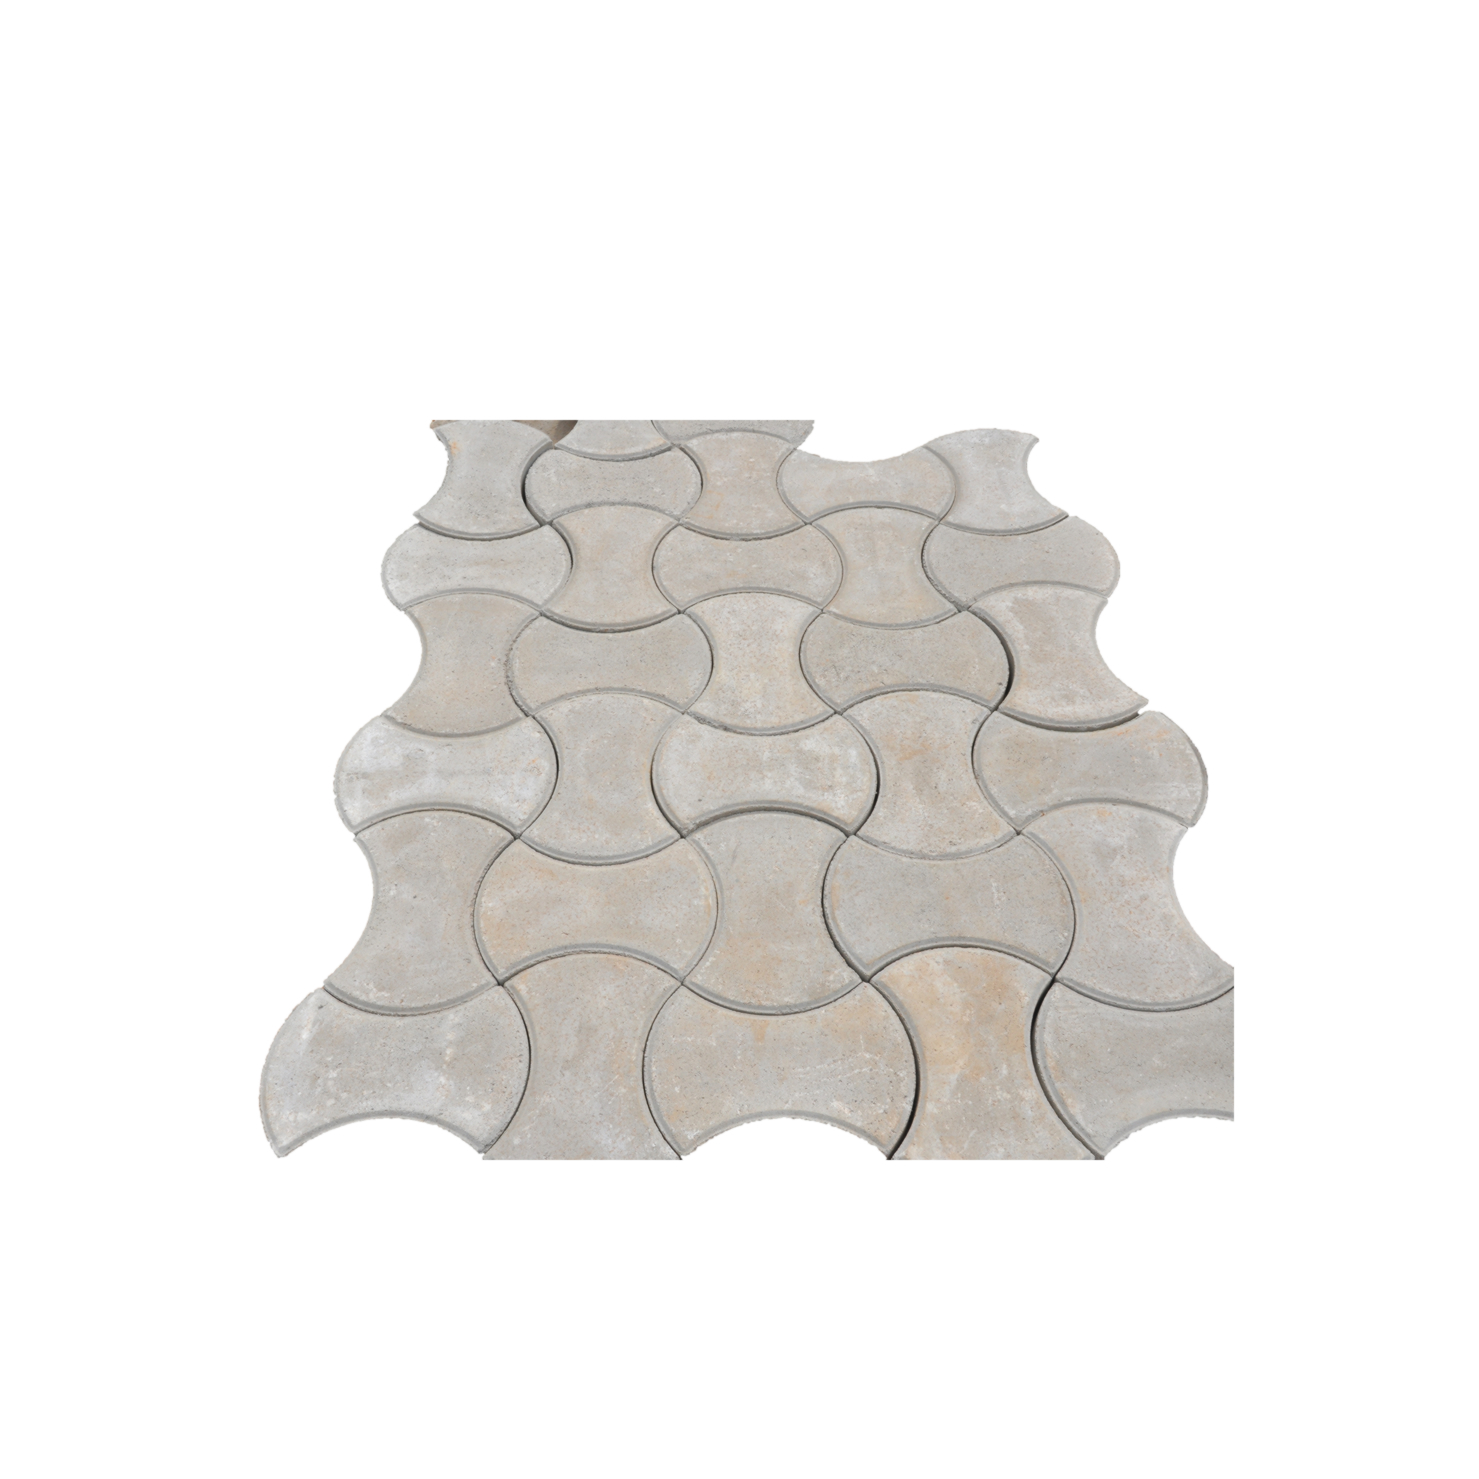 Master Industries Uganda Ltd Pavers